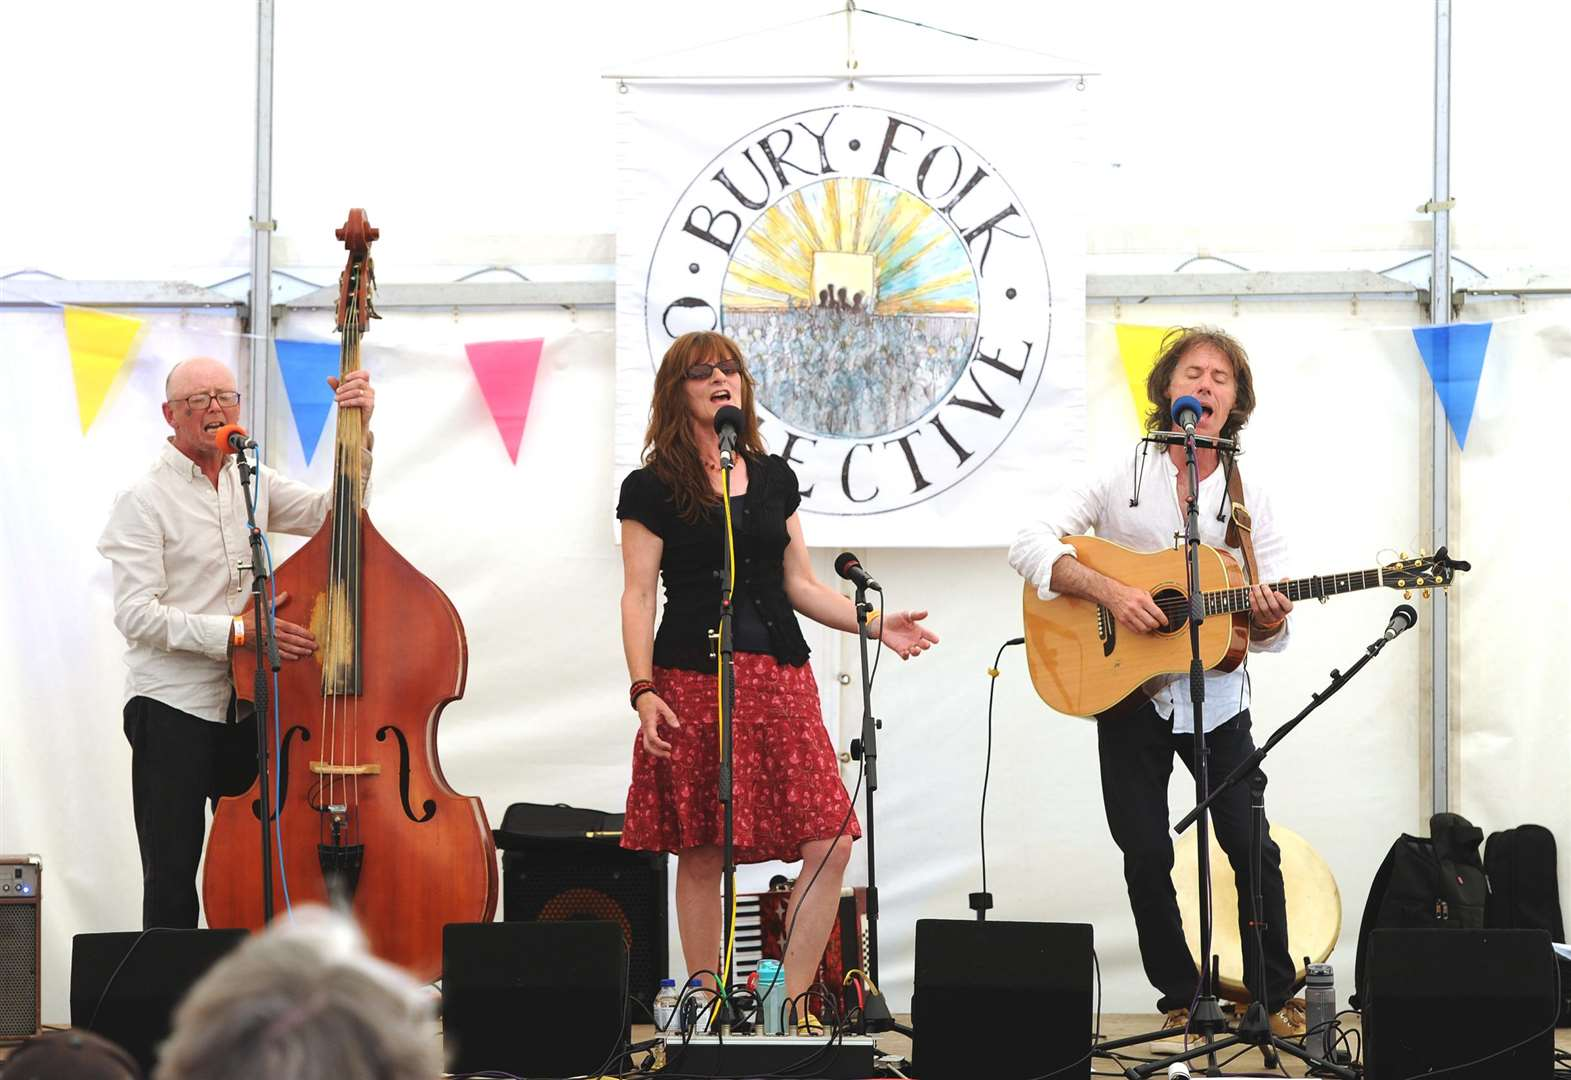 Event hits all the right notes at fourth Bury St Edmunds Folk Festival